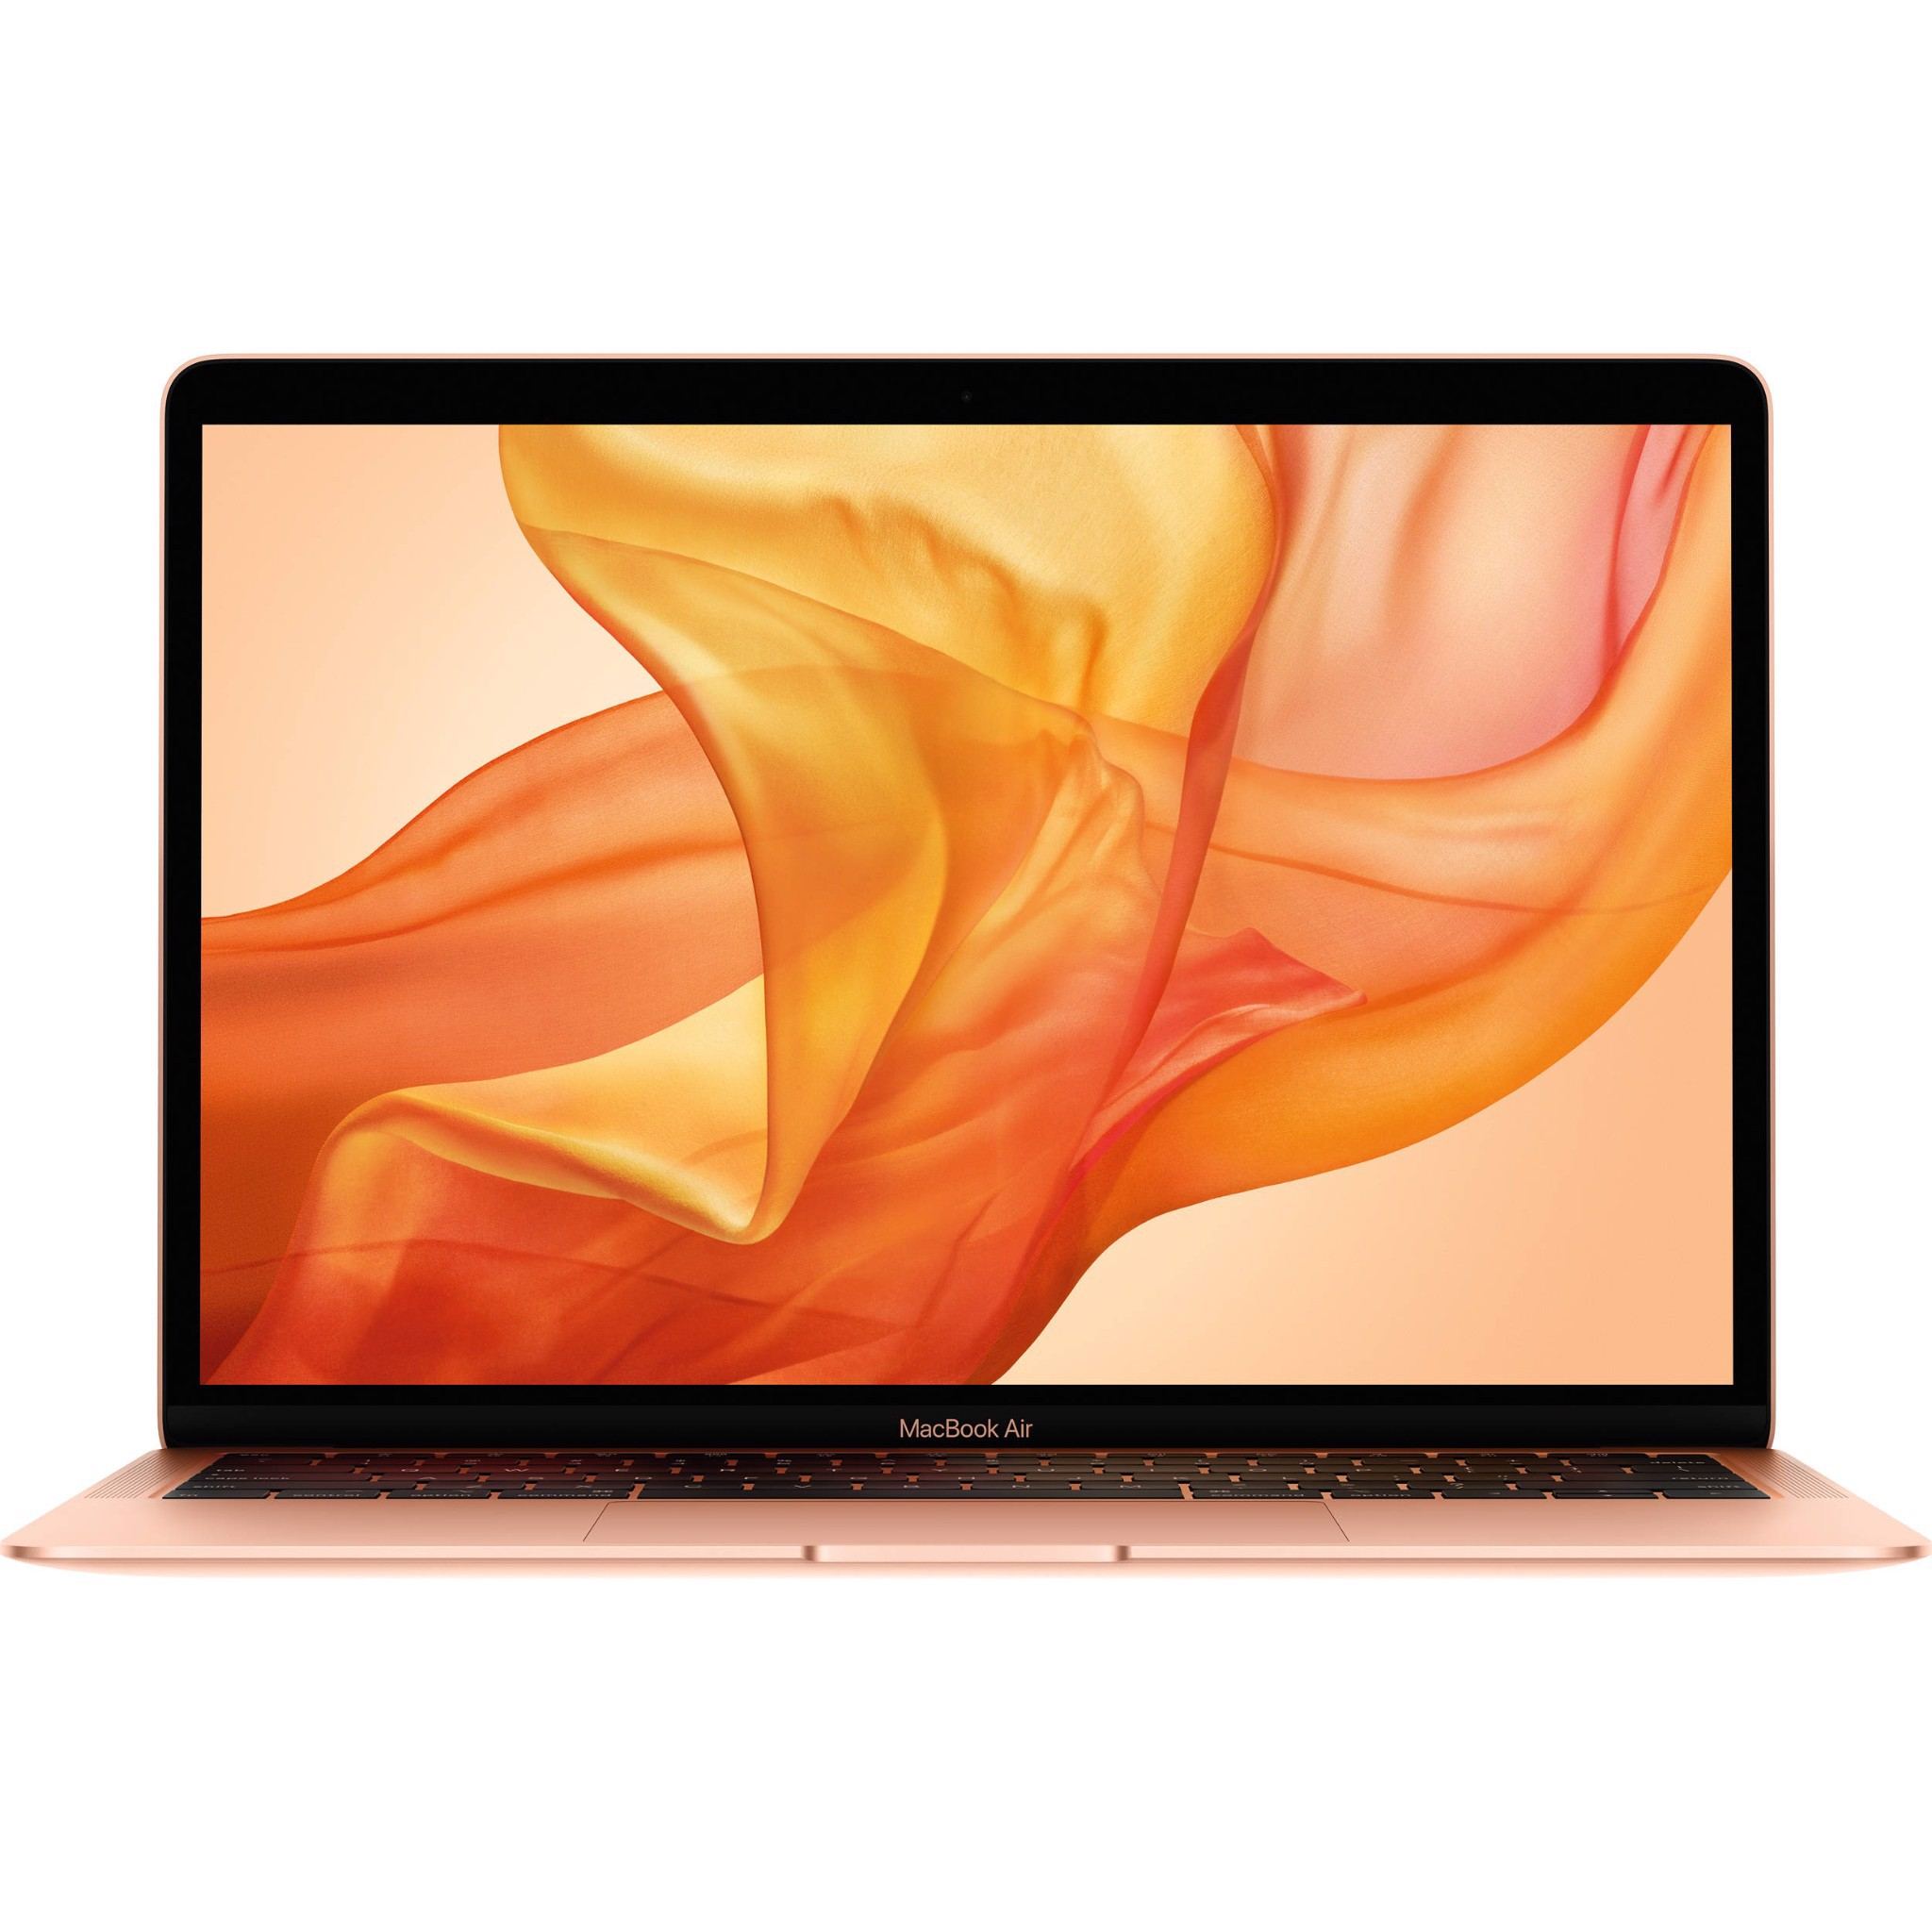 Macbook Air (13.3 Inch, 2018) - Core i5 / RAM 8GB / SSD 128GB